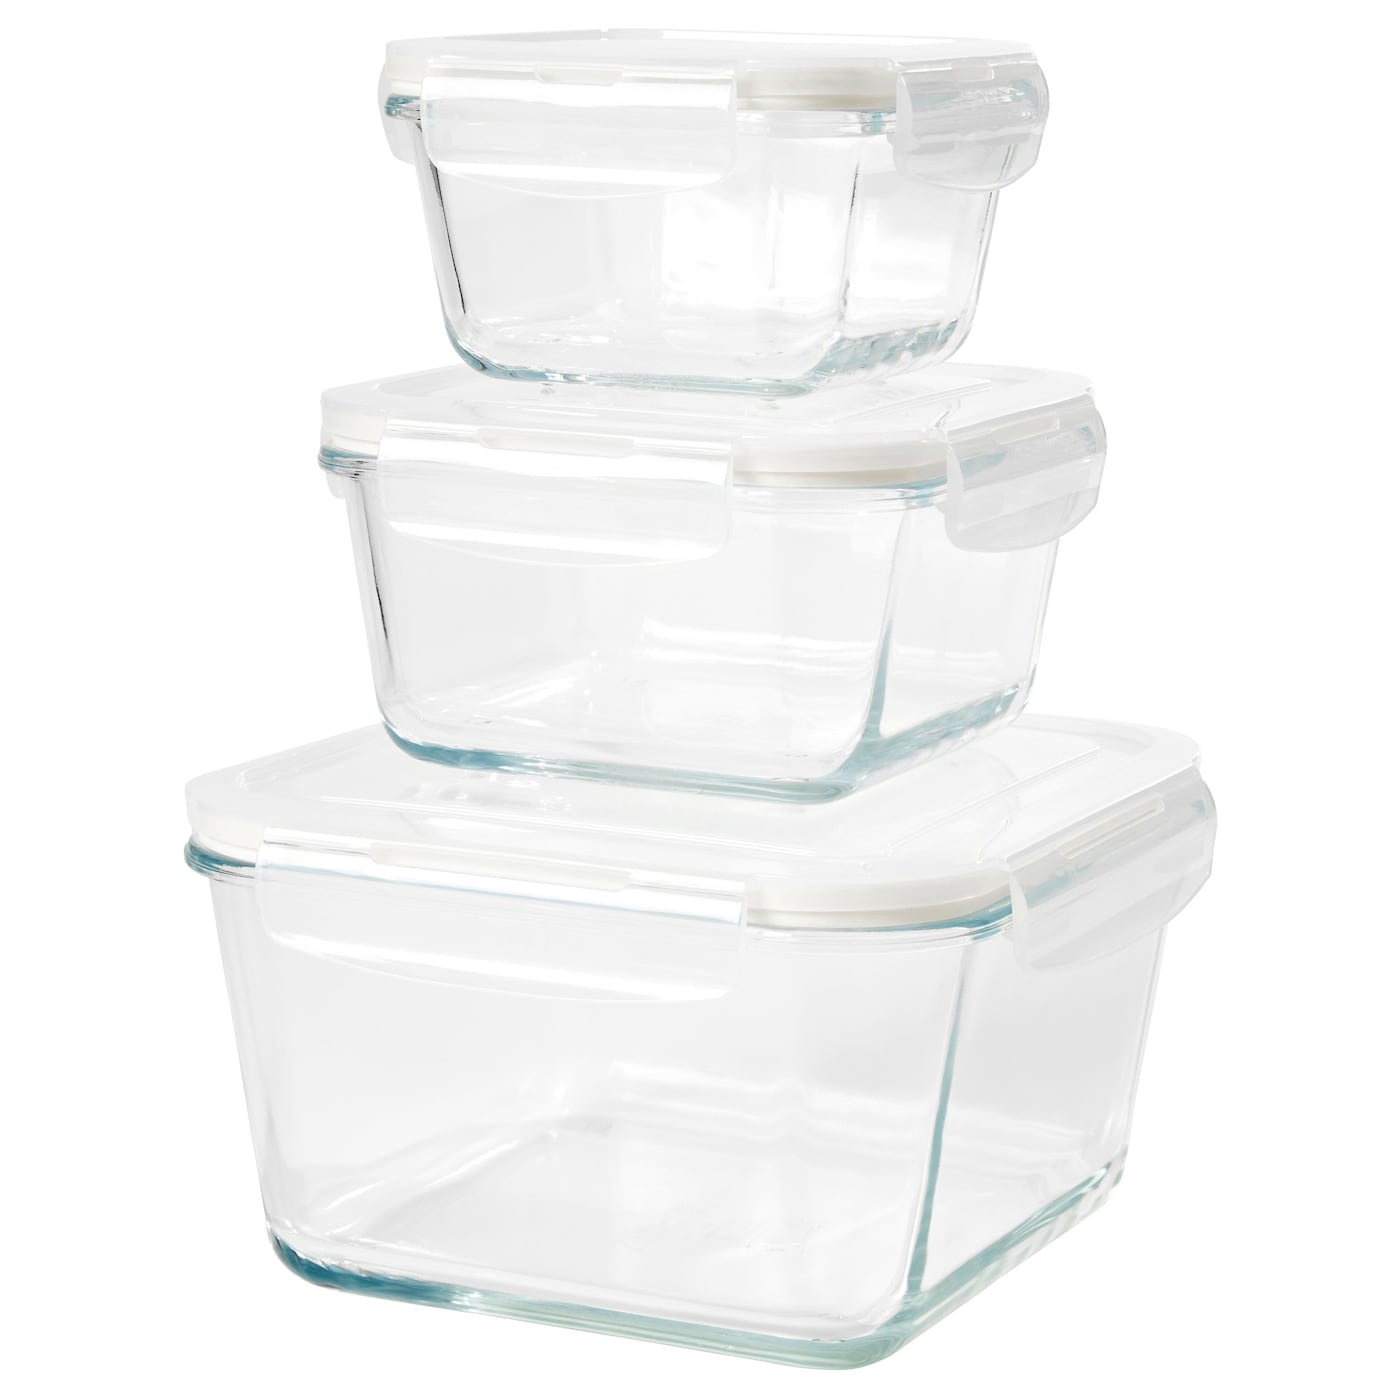 IKEA FÖRTROLIG Food container, set of 3